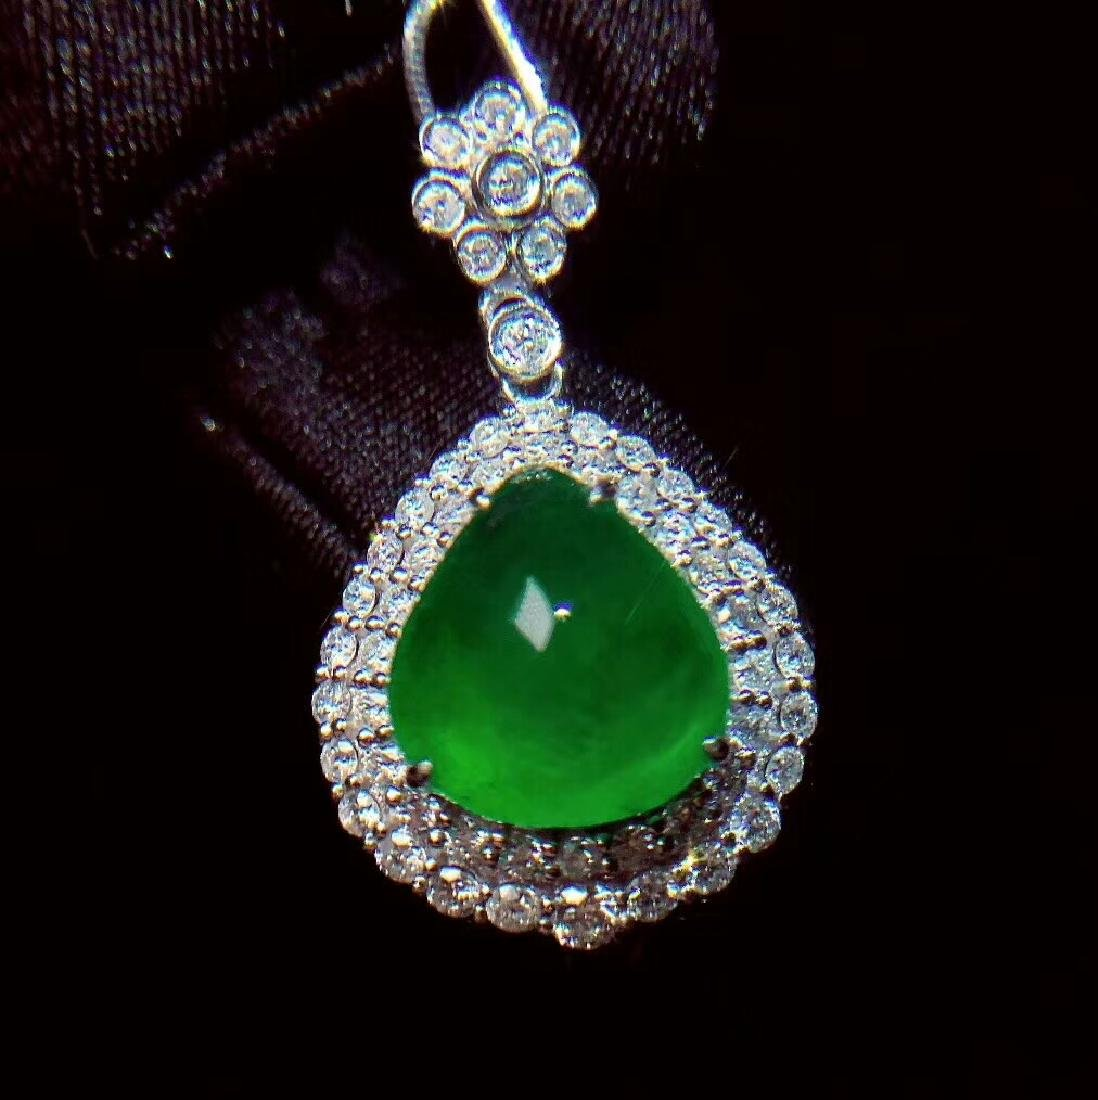 6.1ct Emerald Pendant in 18kt White Gold